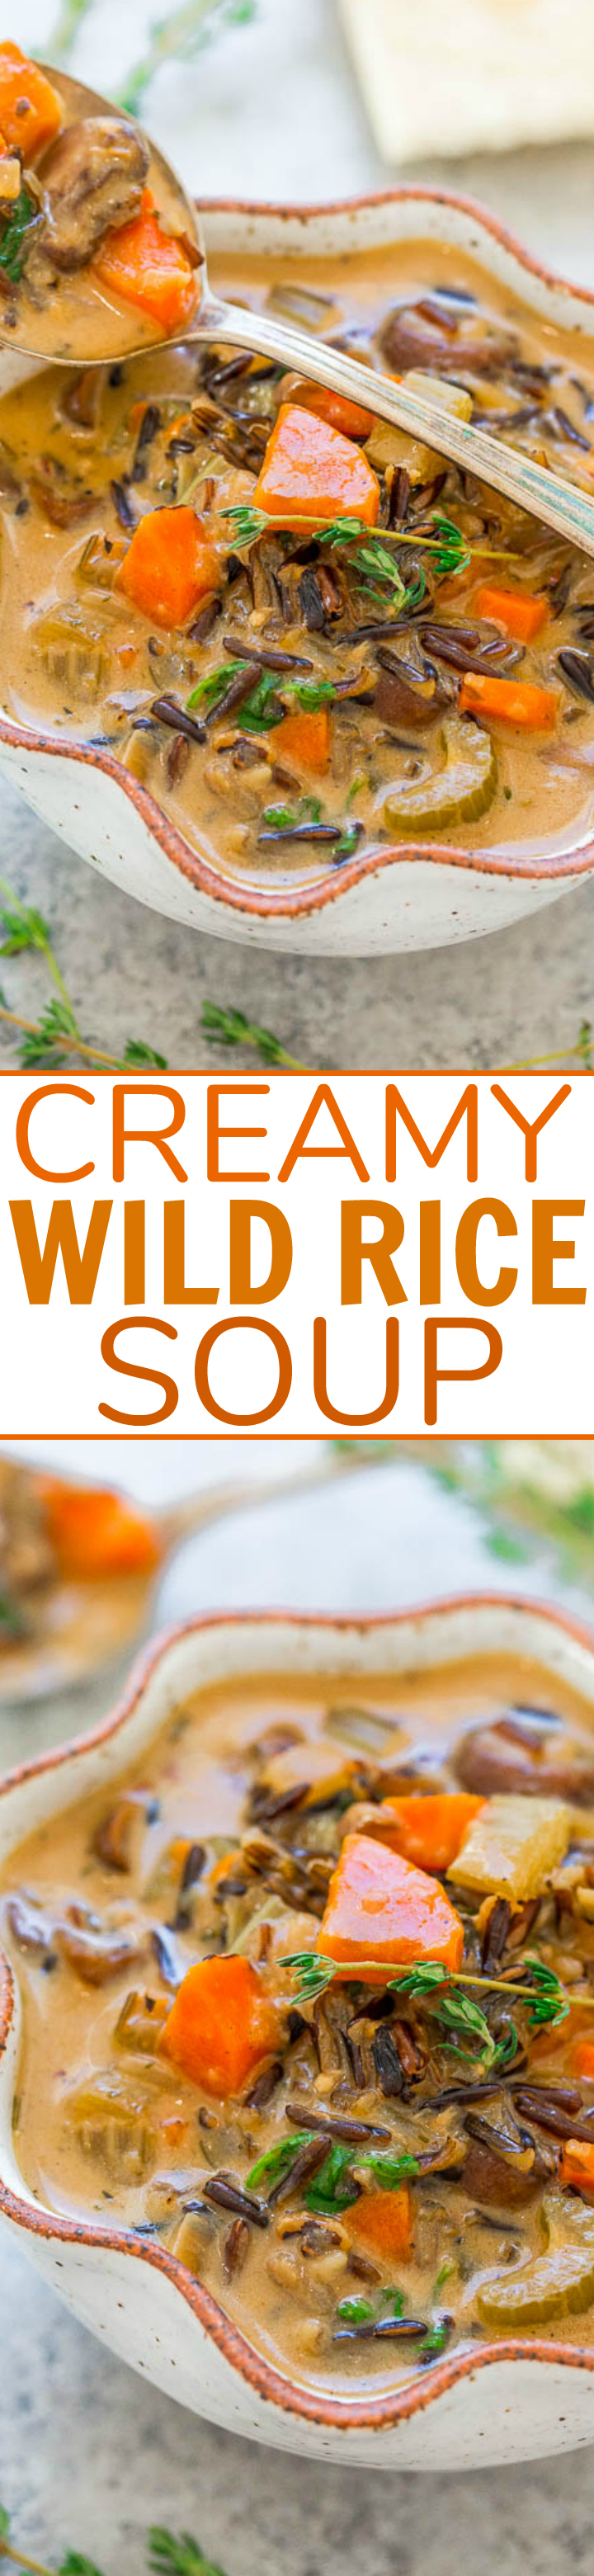 Creamy Wild Rice Soup - Hearty, comforting, and loaded with chewy texture from the wild rice!! This EASY recipe is made in one pot on the stovetop, ready in no time, and perfect for chilly weather!!